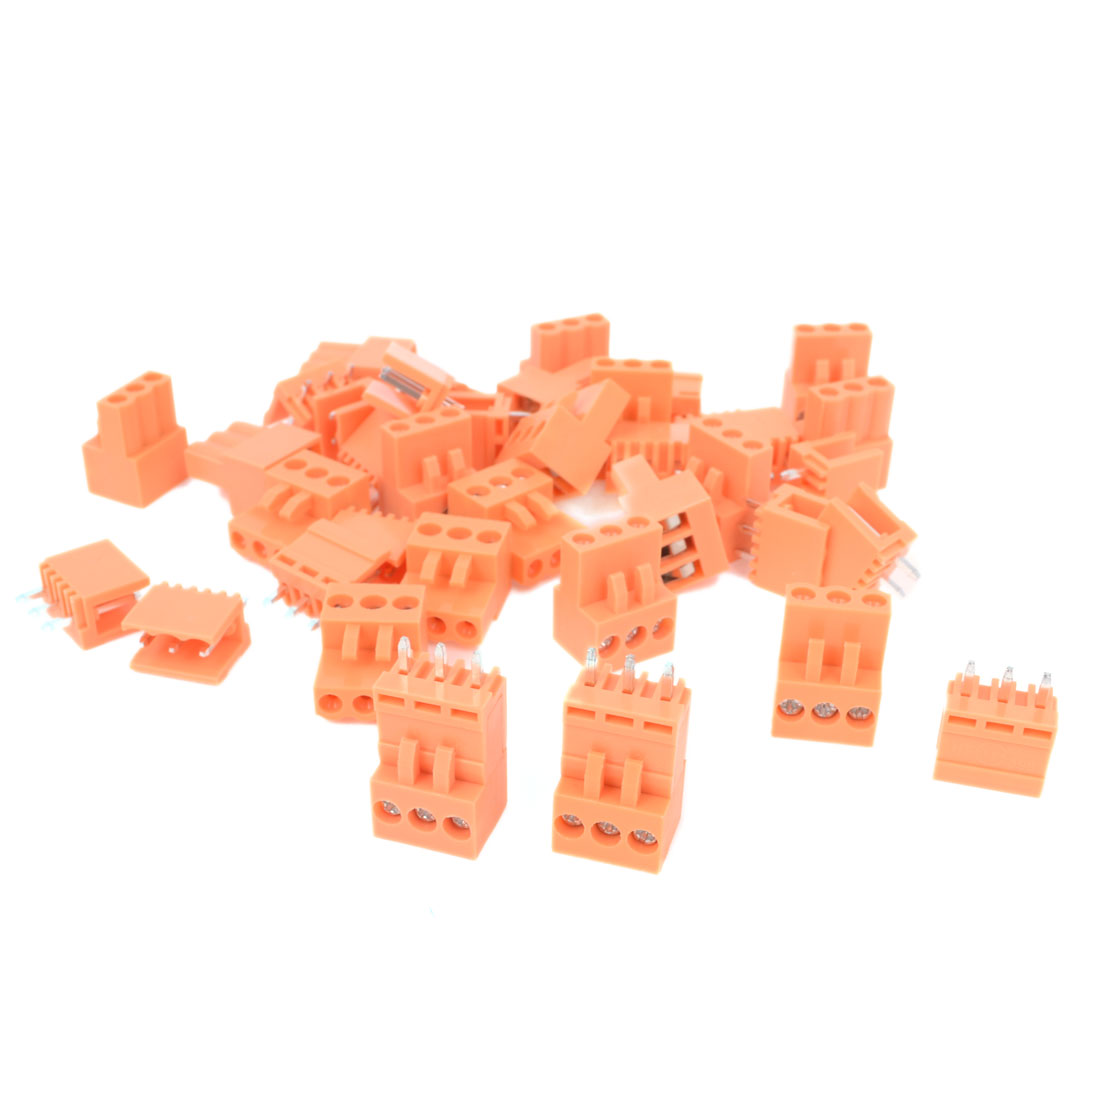 10Pcs AC 300V 10A 3P Poles PCB Screw Terminal Block Connector 3.96mm Pitch Orange